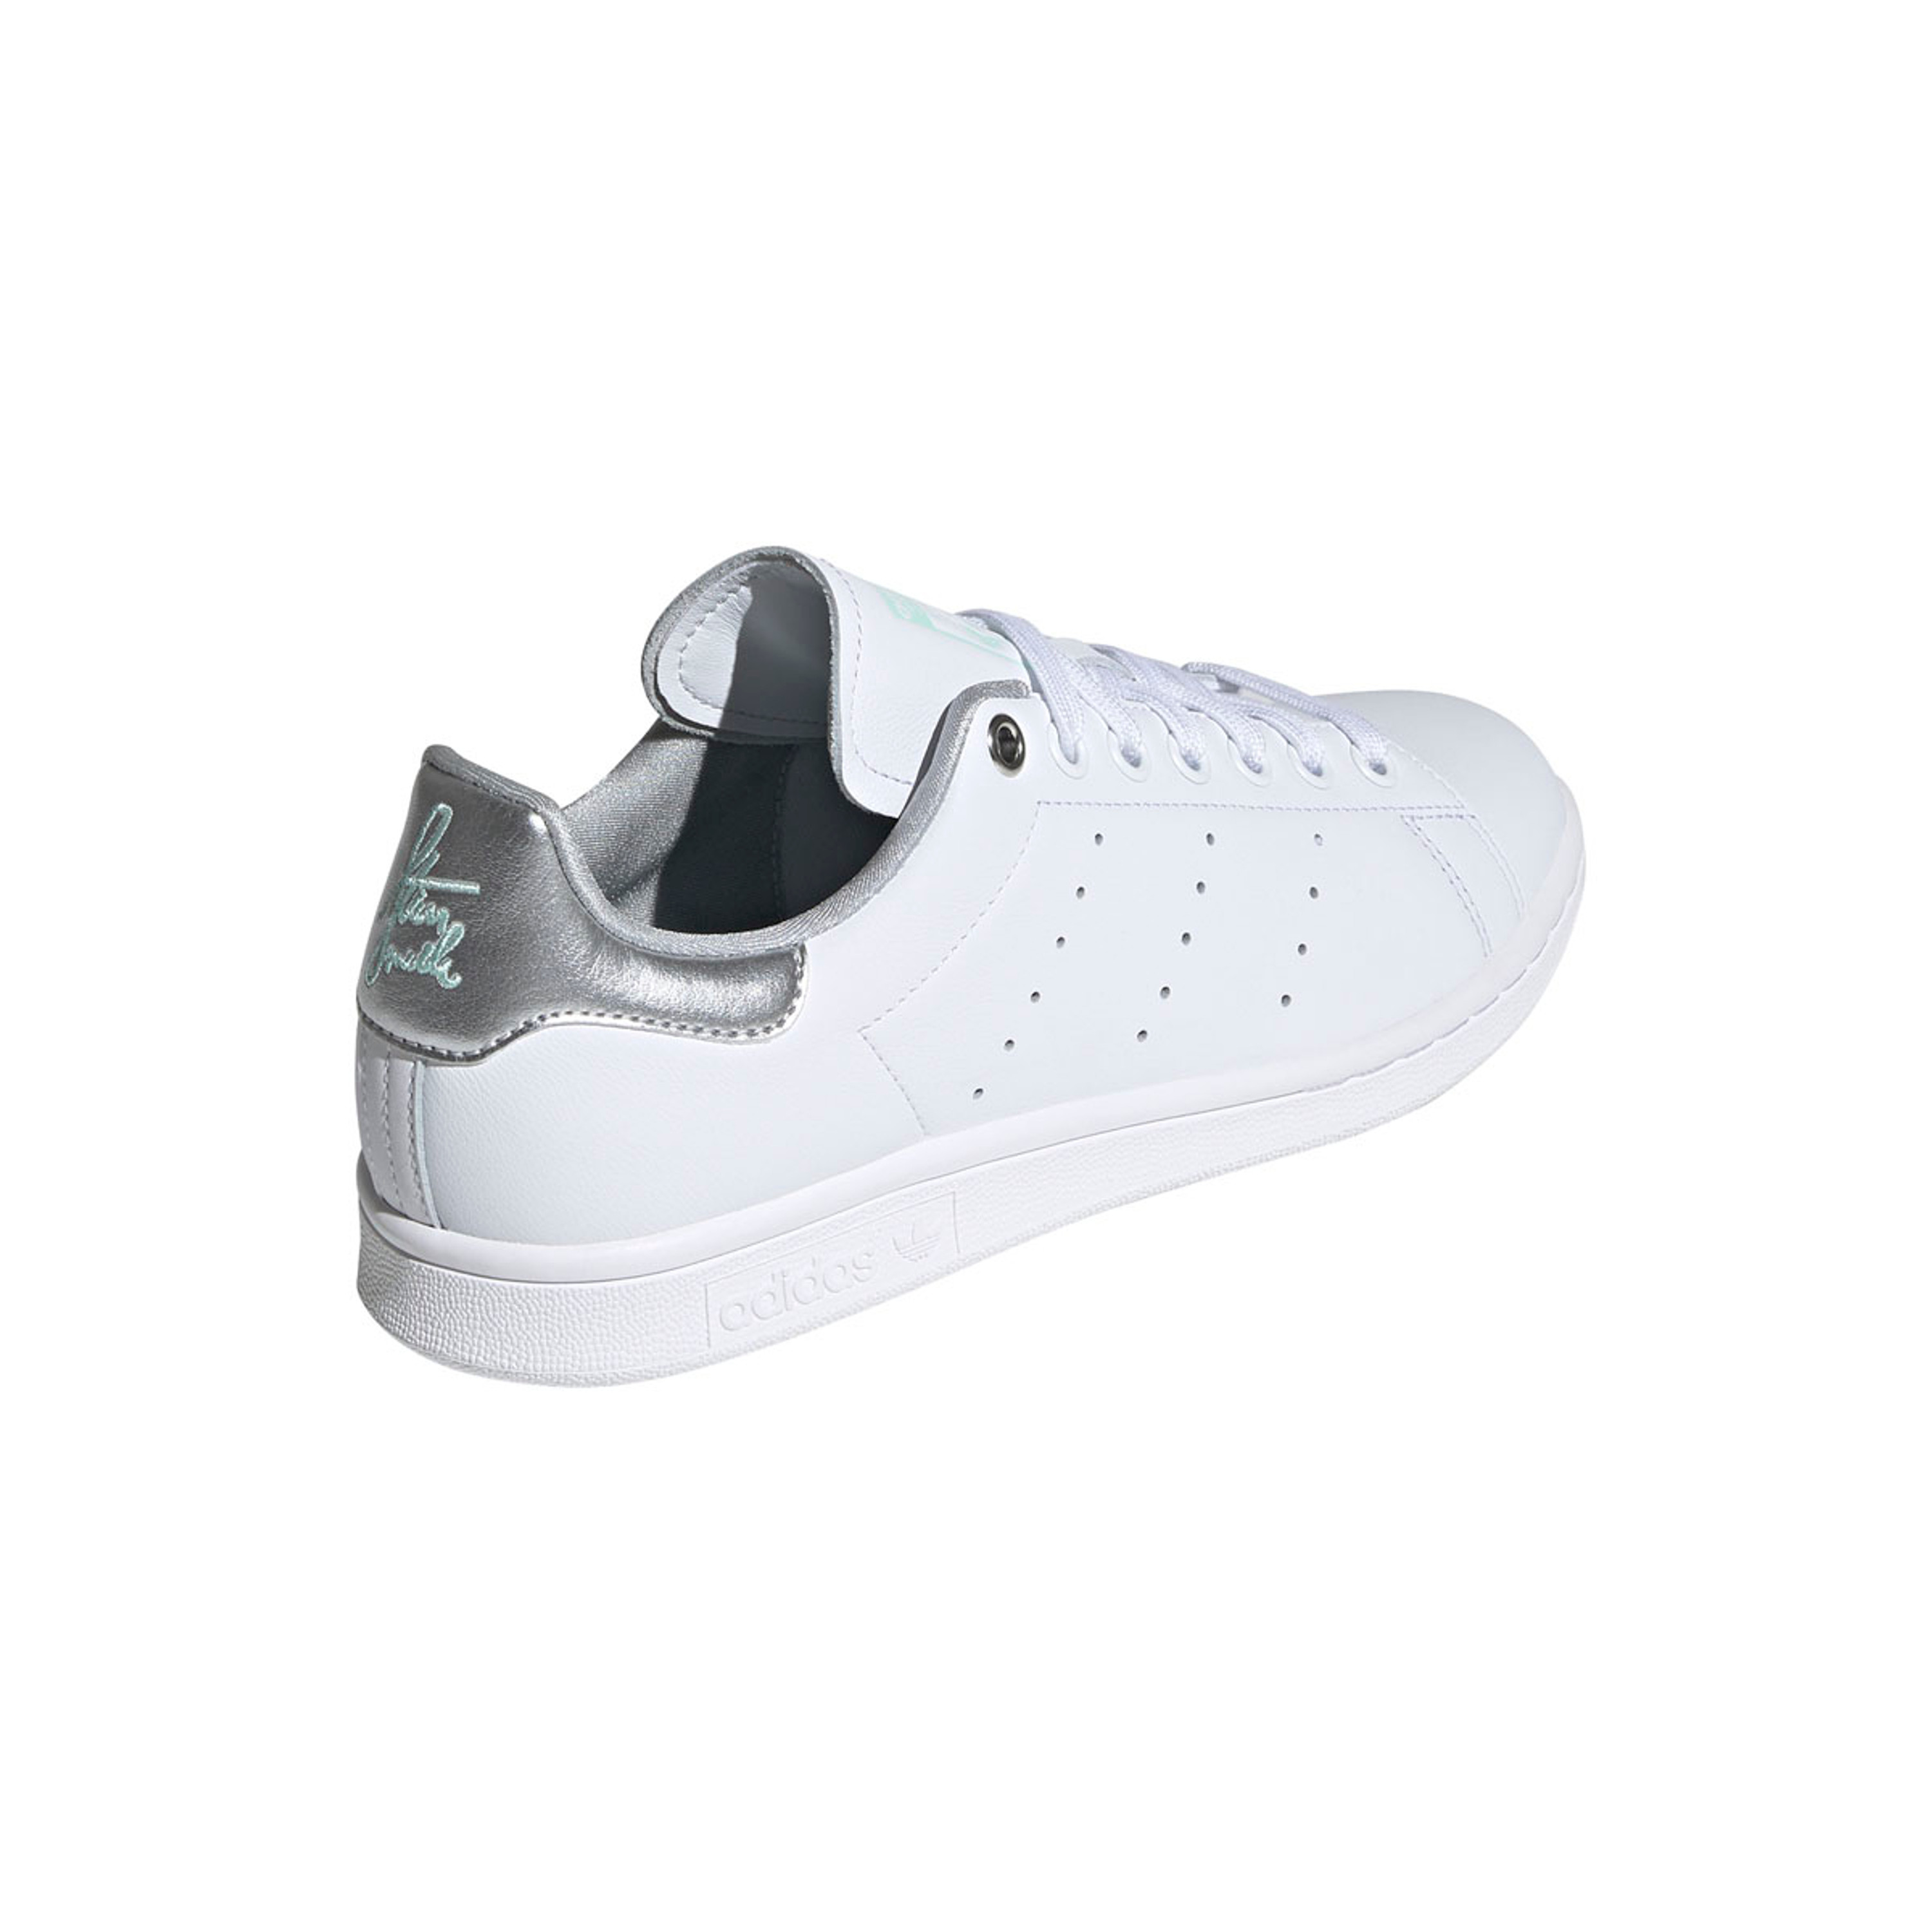 32811ae0191a64 Adidas Stan Smith Tennis Retro Sneakers für Damen in weiß